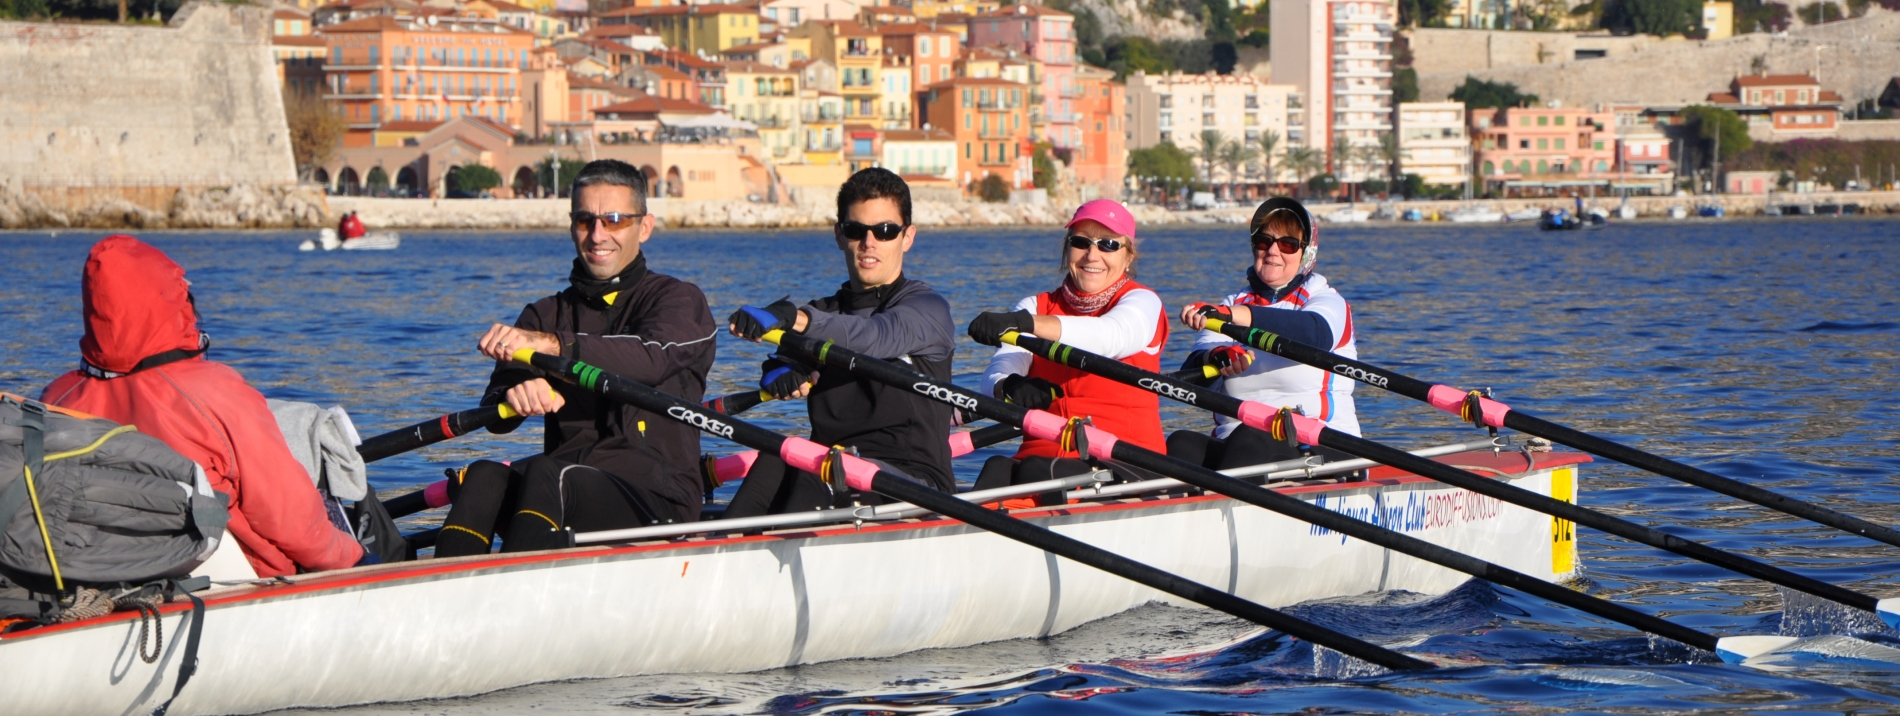 Martigues Aviron Club